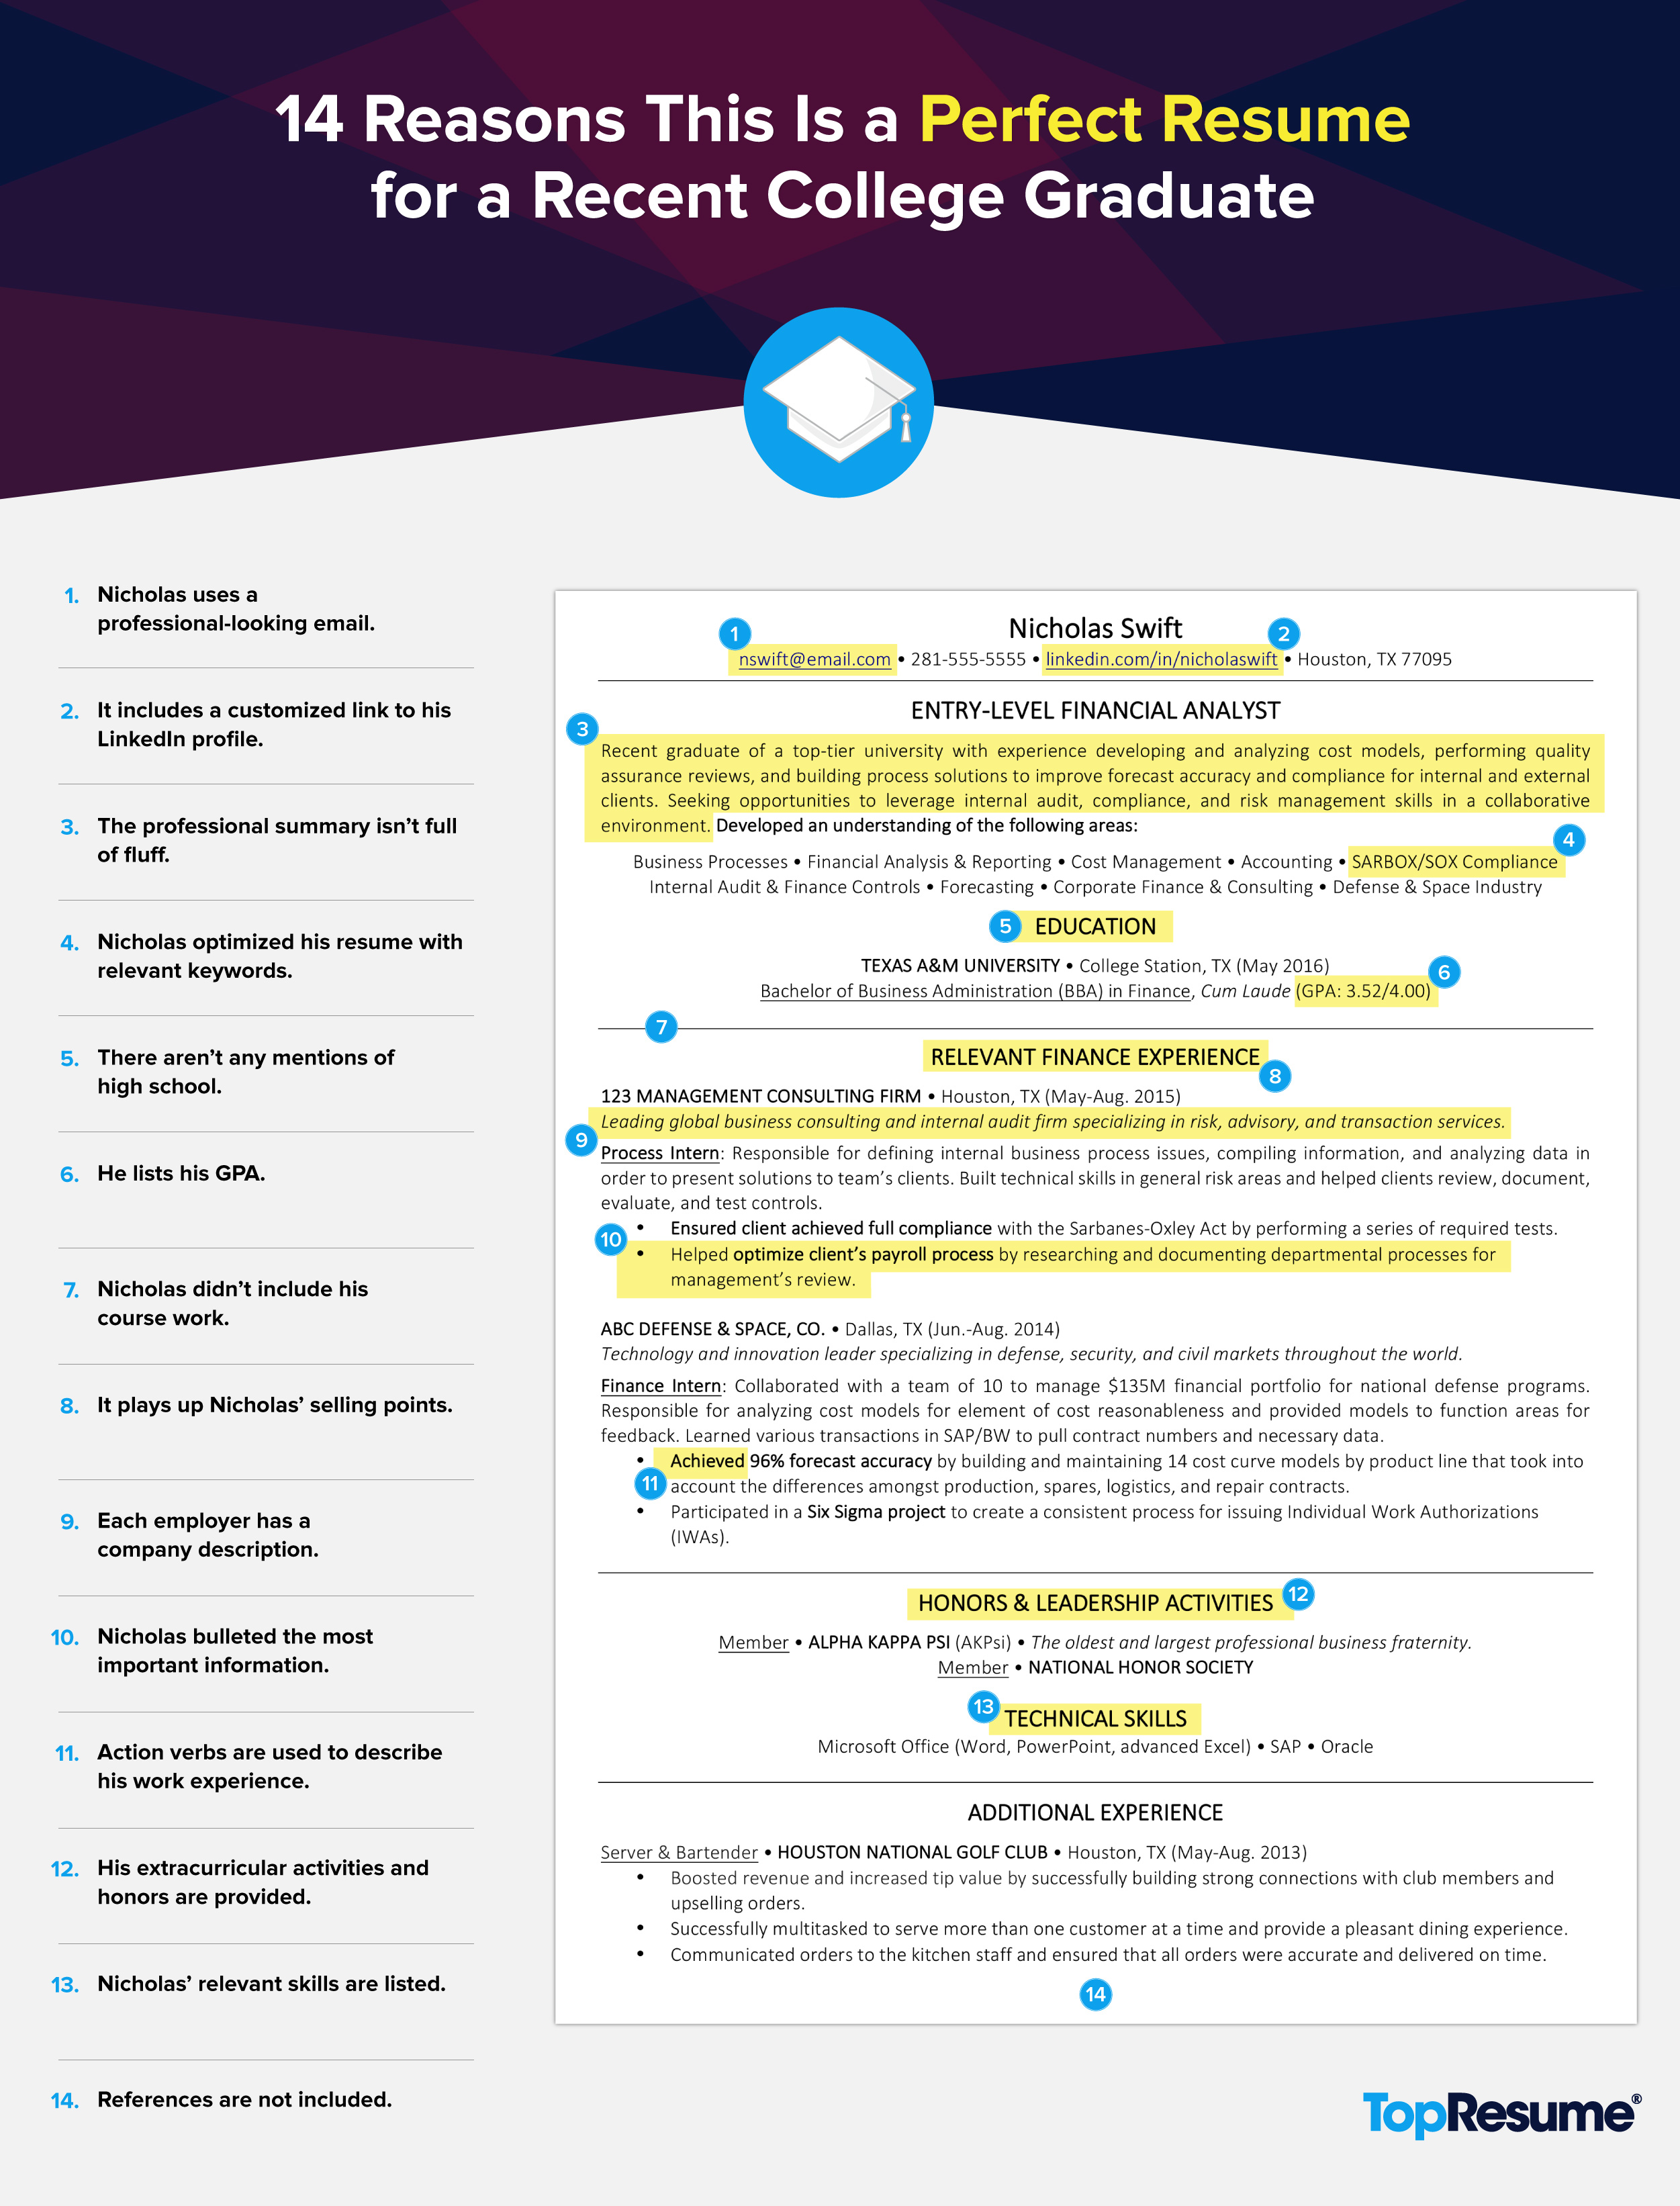 14 resume strategies for recent graduates